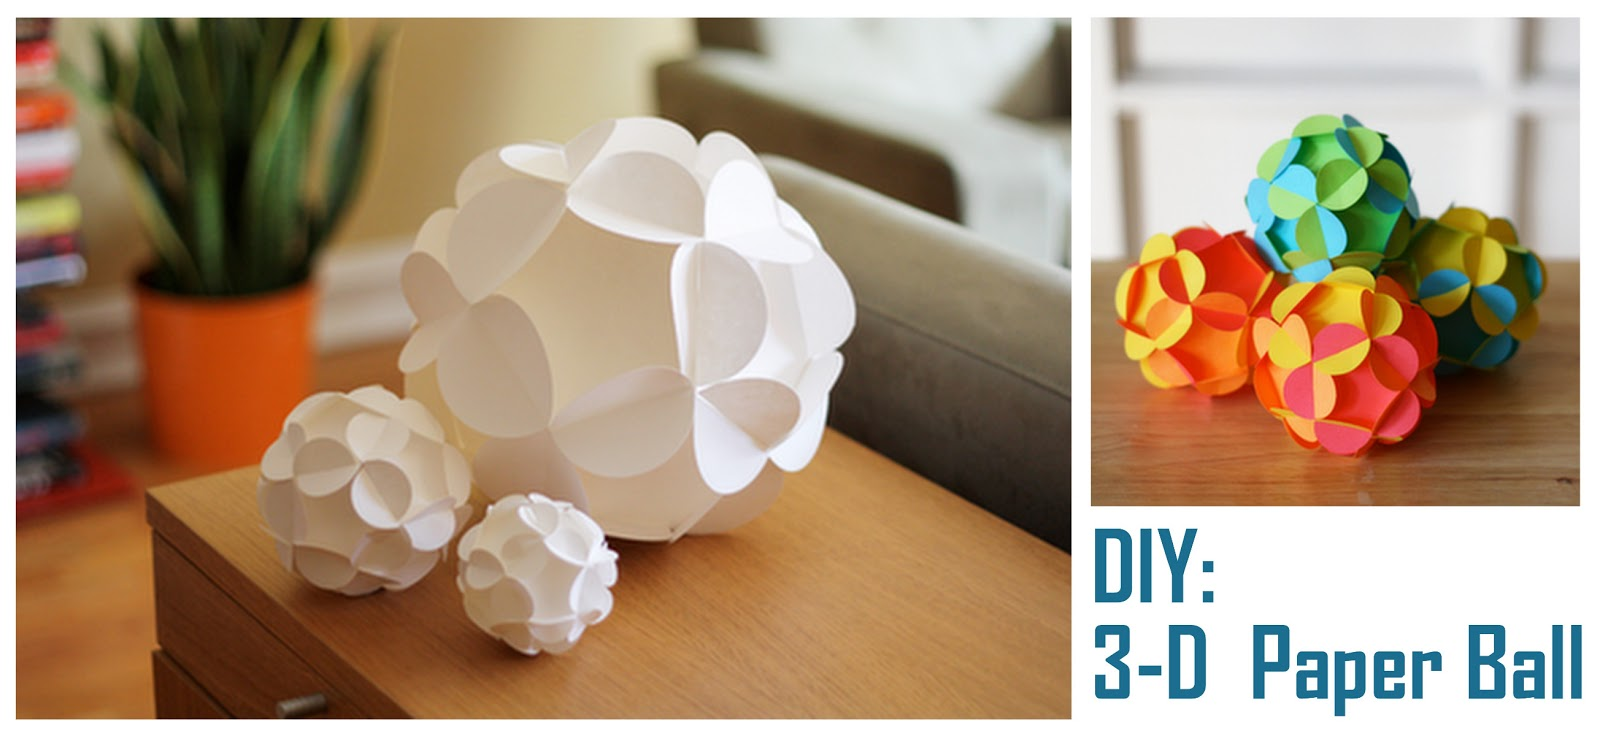 How To DIY 3 D Paper Ball